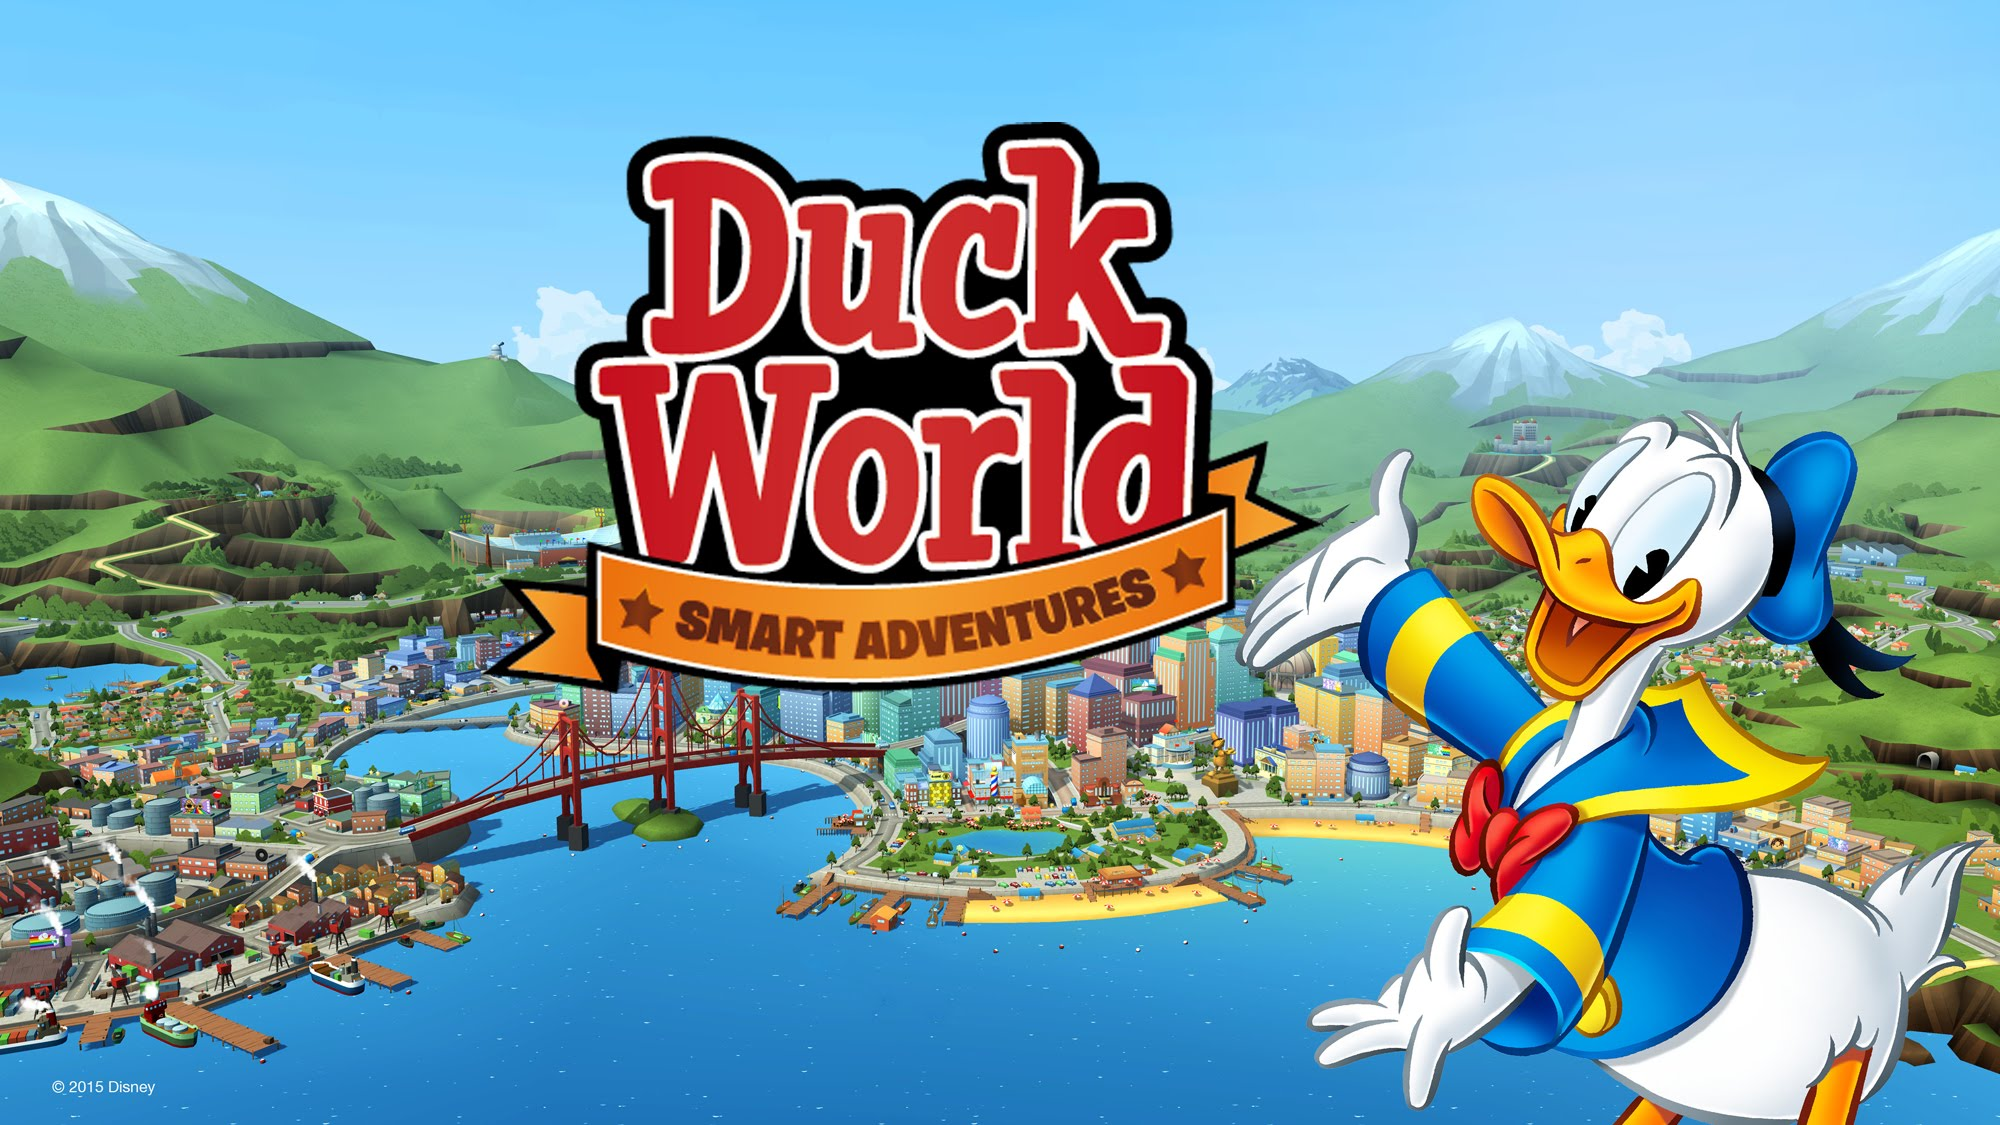 Duckworld Adventures